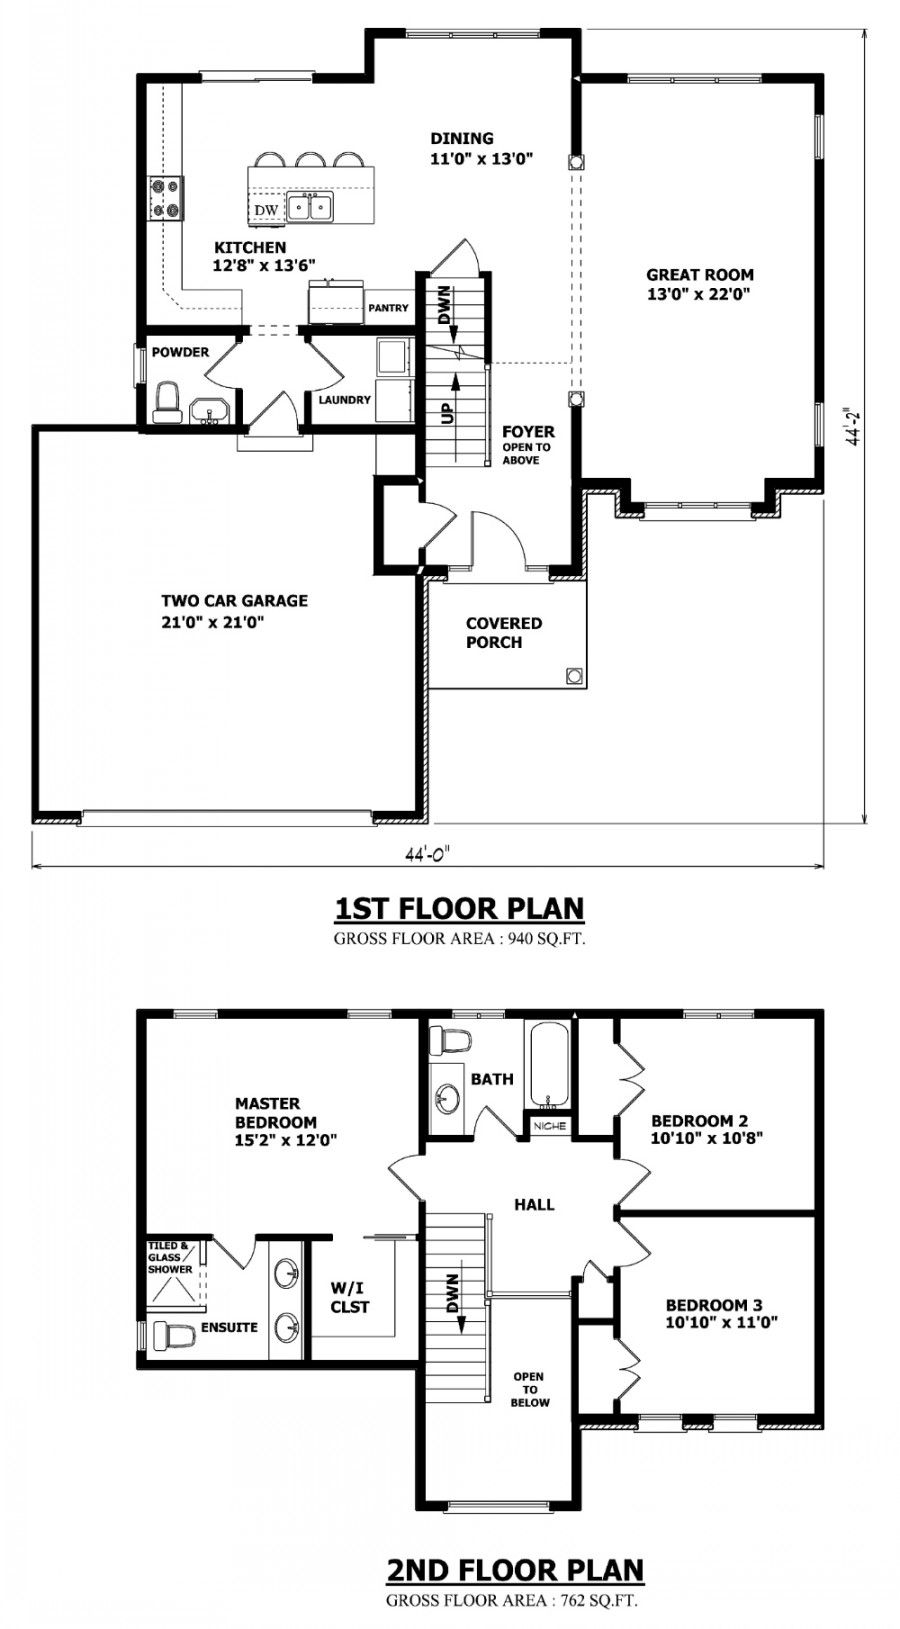 Home designs custom house plans stock house plans amp for 2 story house blueprints